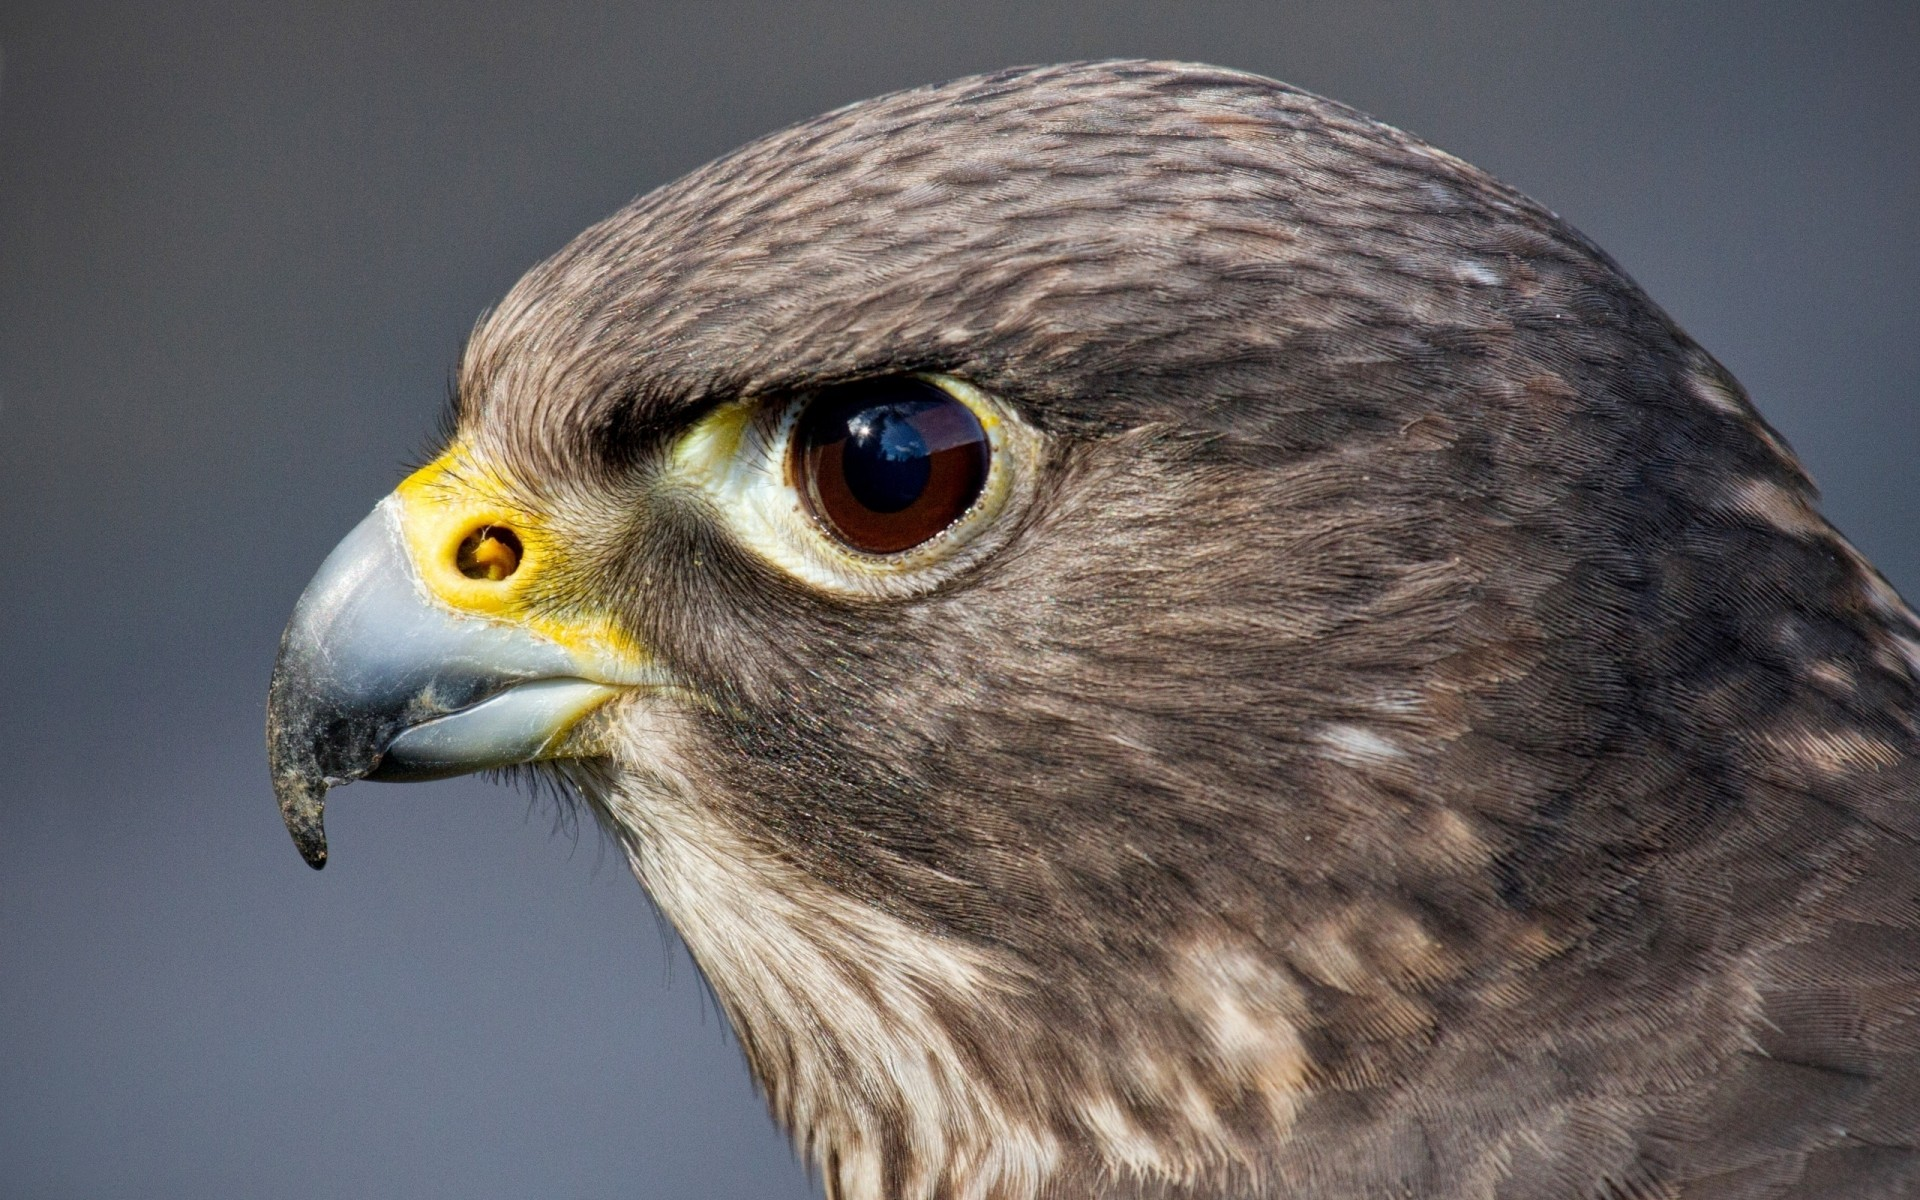 Hawk Head IPhone Wallpapers For Free